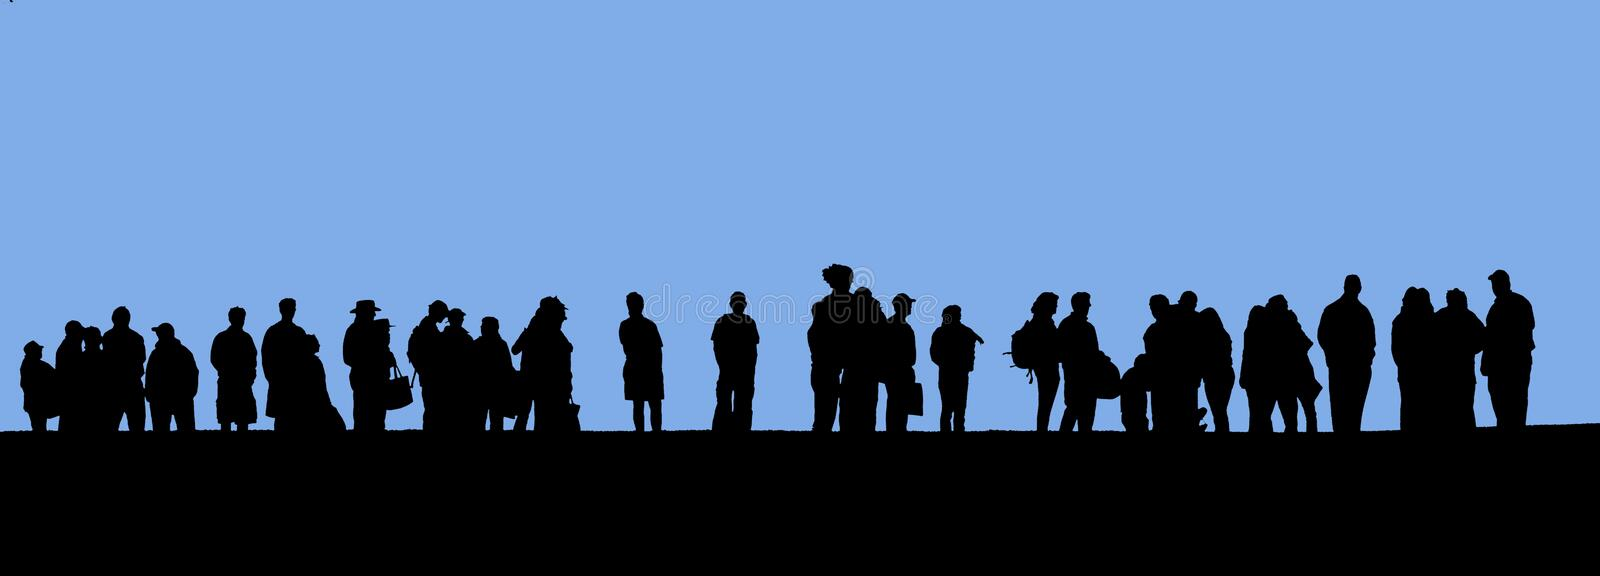 People in line stock images